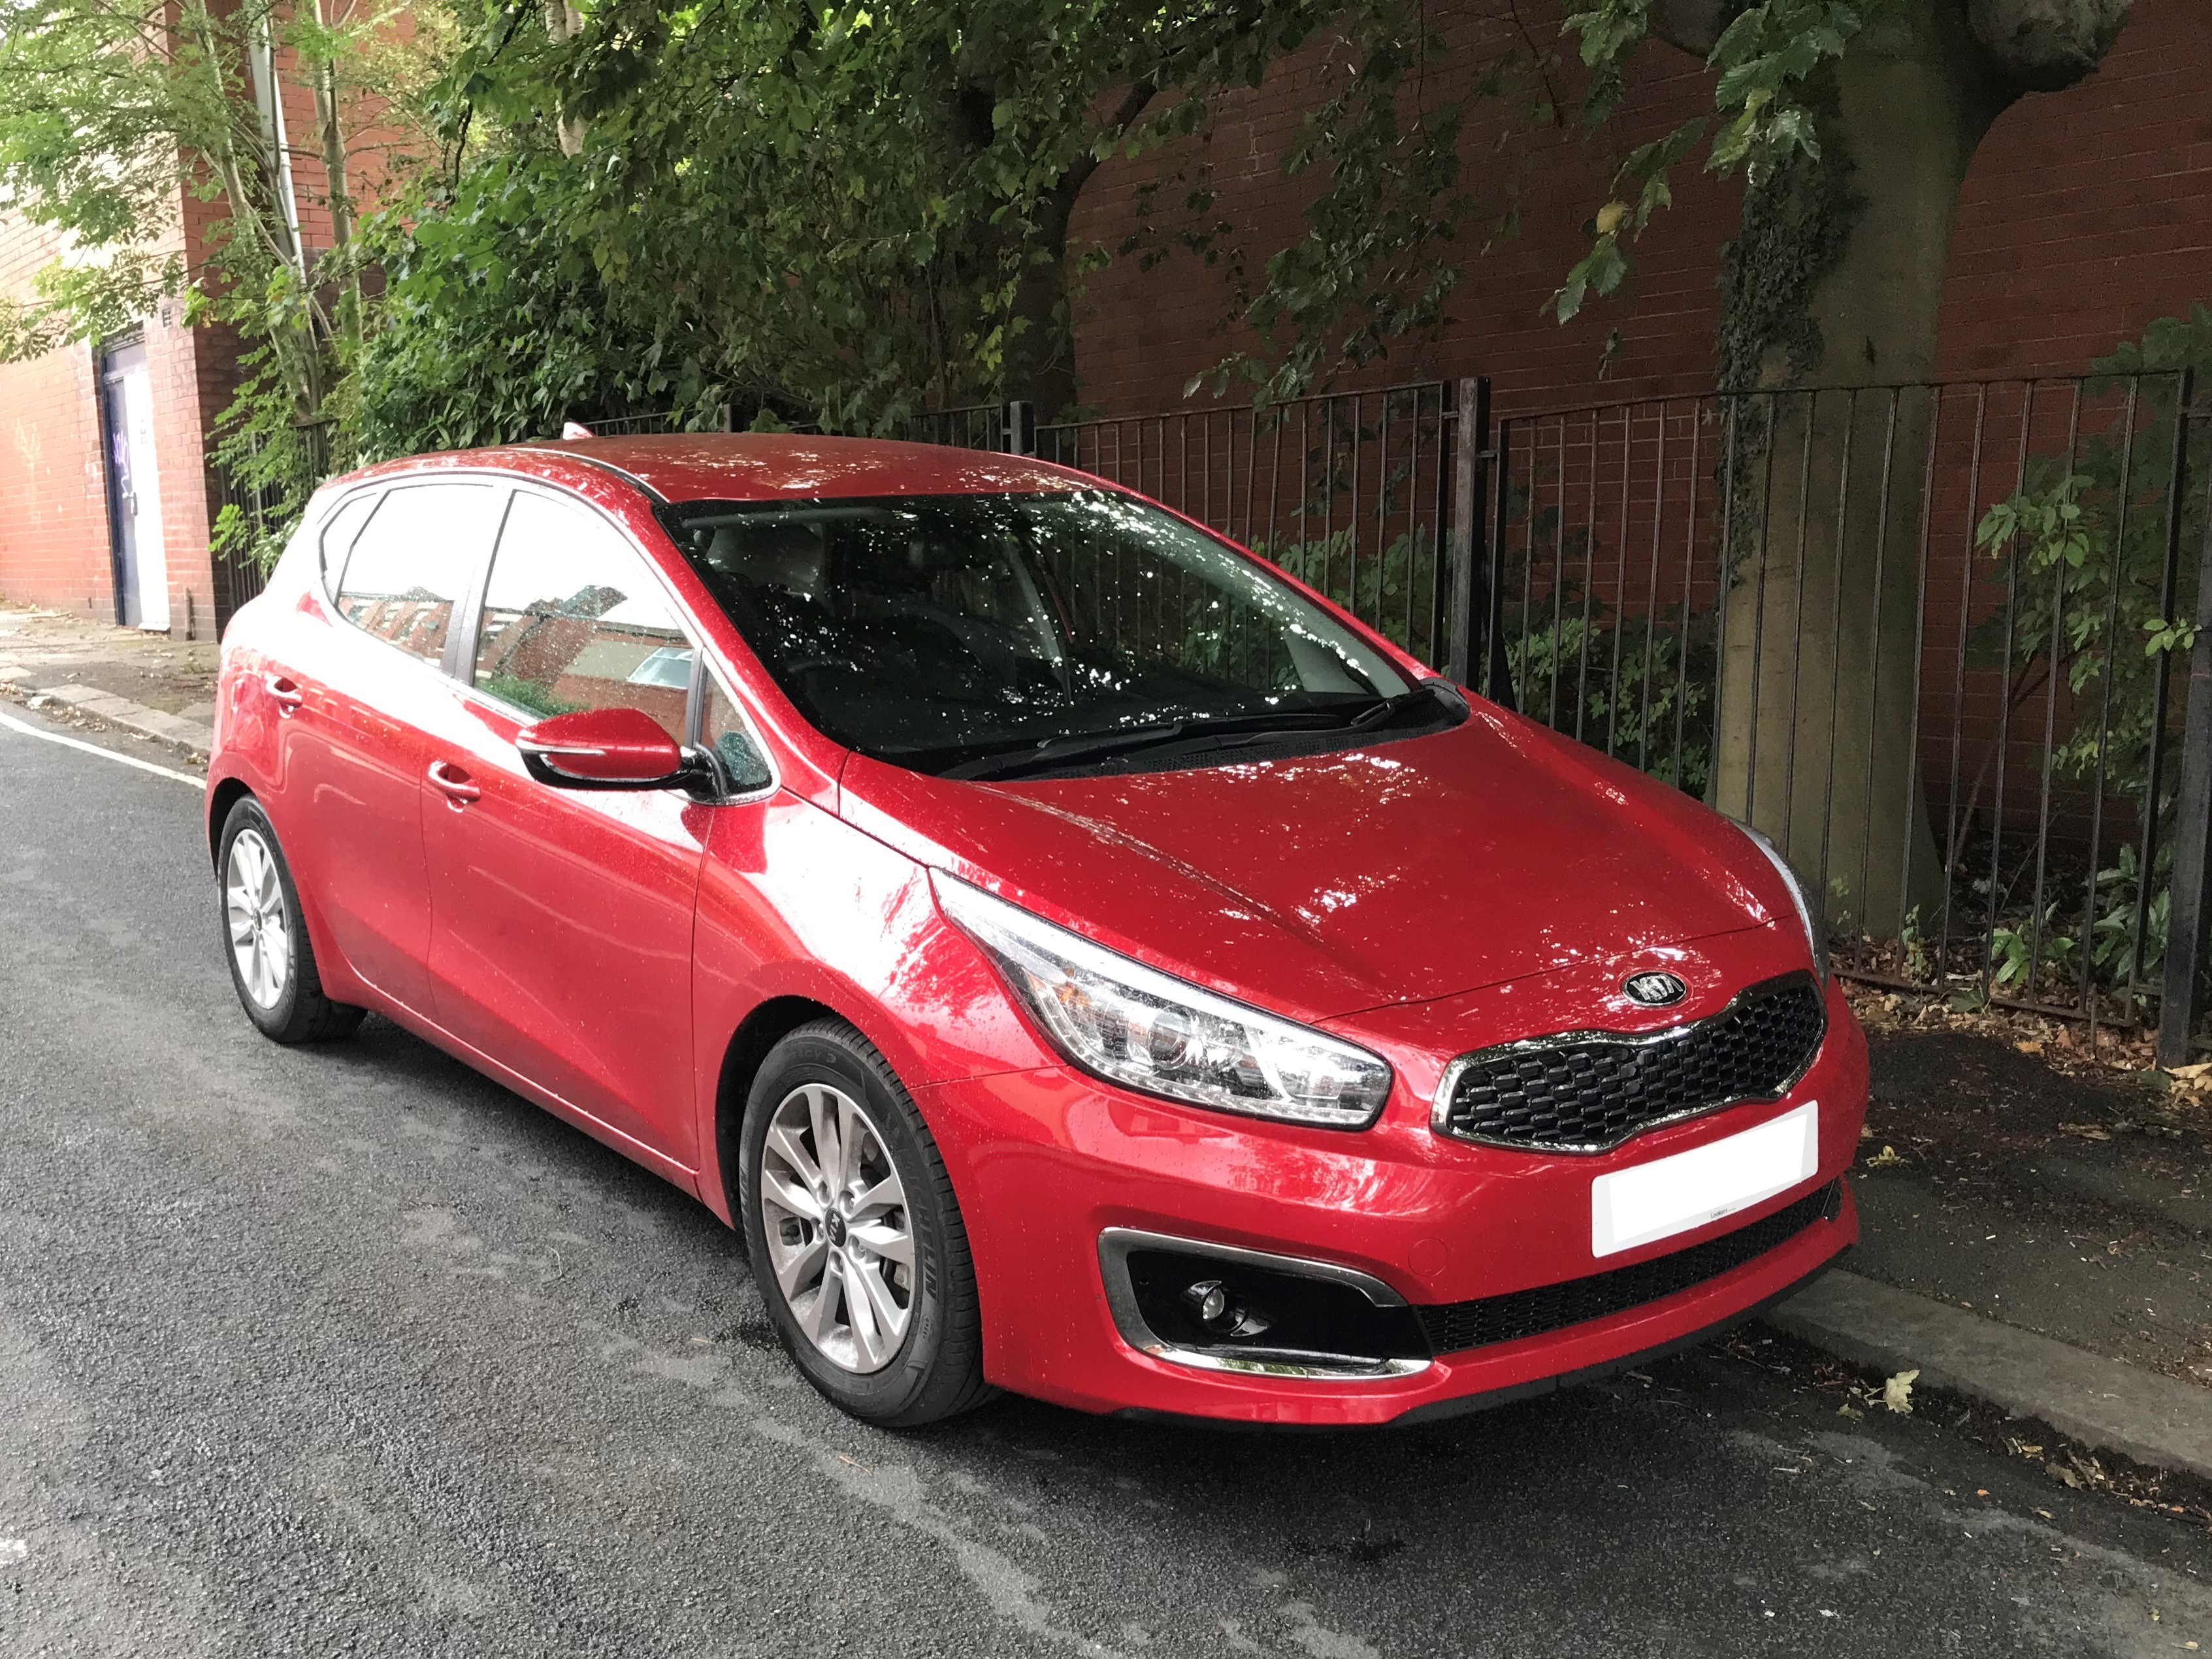 Medium  5 door car e.g. Vauxhall  Astra / Peugeot 208 / Kia Cee'd for hire in Middleton